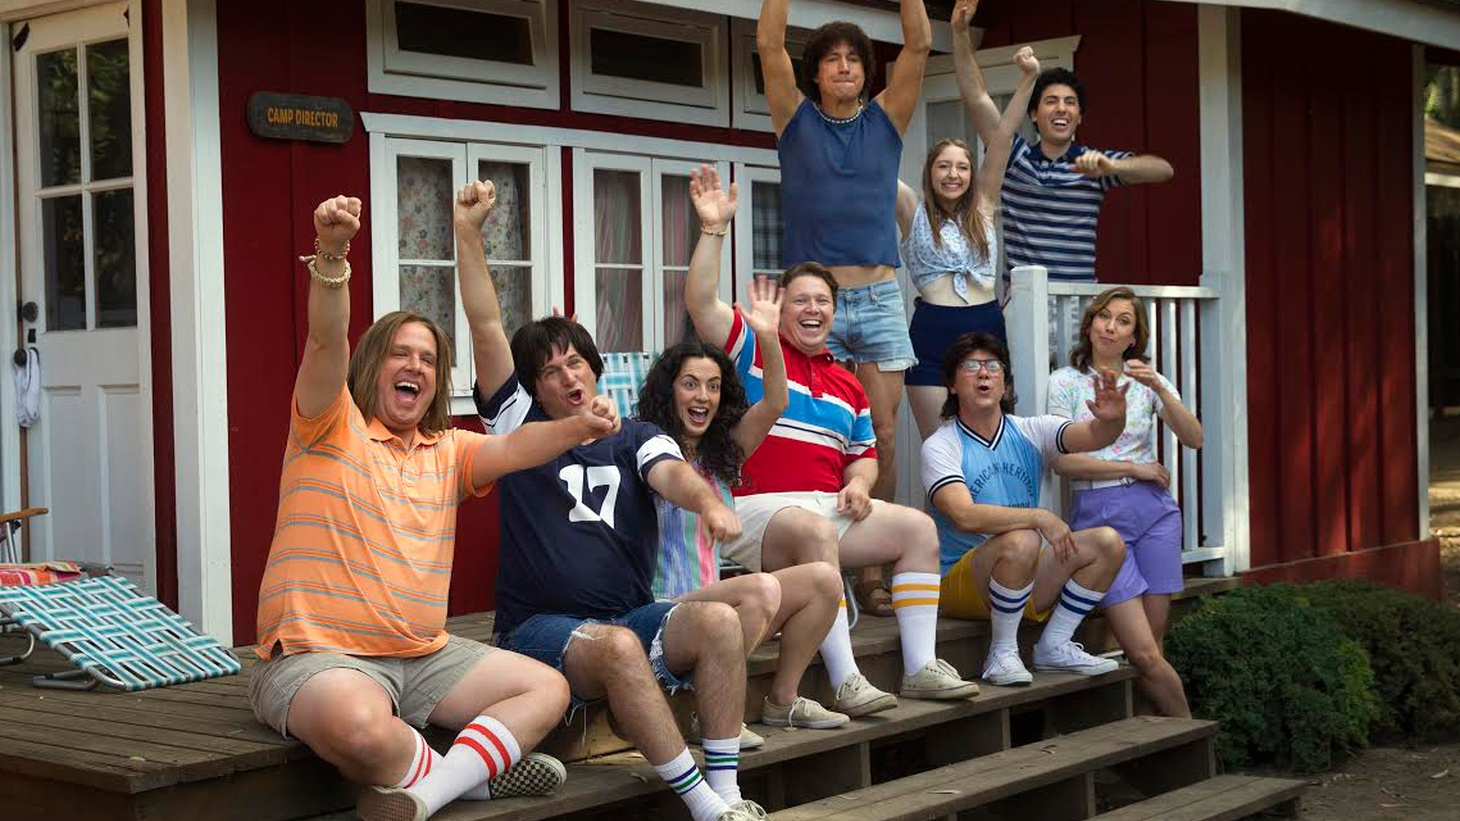 The 2001 film Wet Hot American Summer tanked at the box office, but acquired a cult following as many members of its ensemble cast went on to have huge careers. Now director David Wain has reunited the entire cast for a new series on Netflix, Wet Hot American Summer: First Day of Camp.